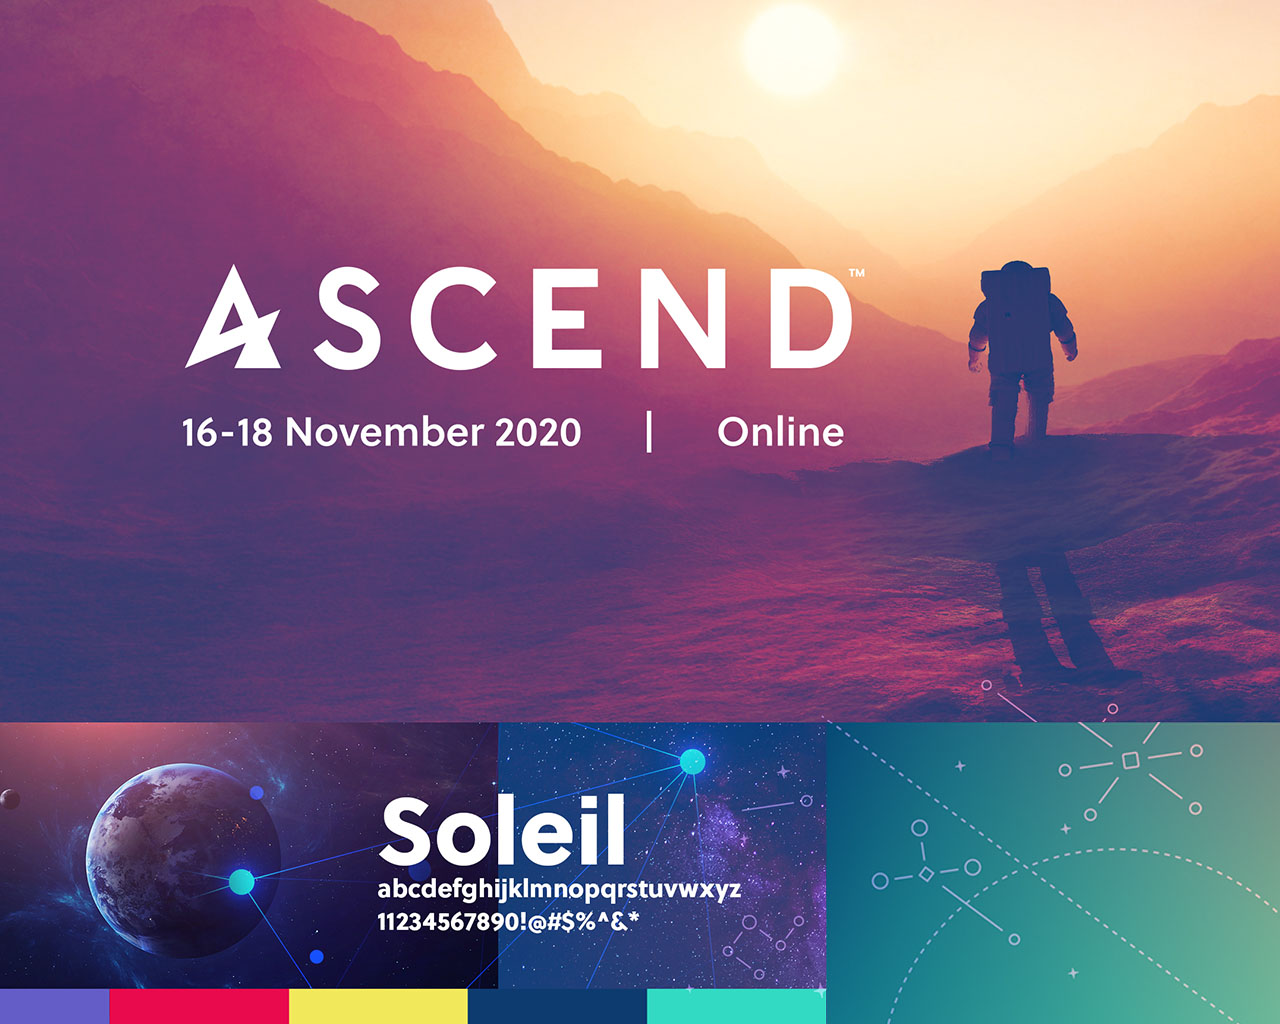 Grid of branded imagery, color and typography for the virtual event ASCEND